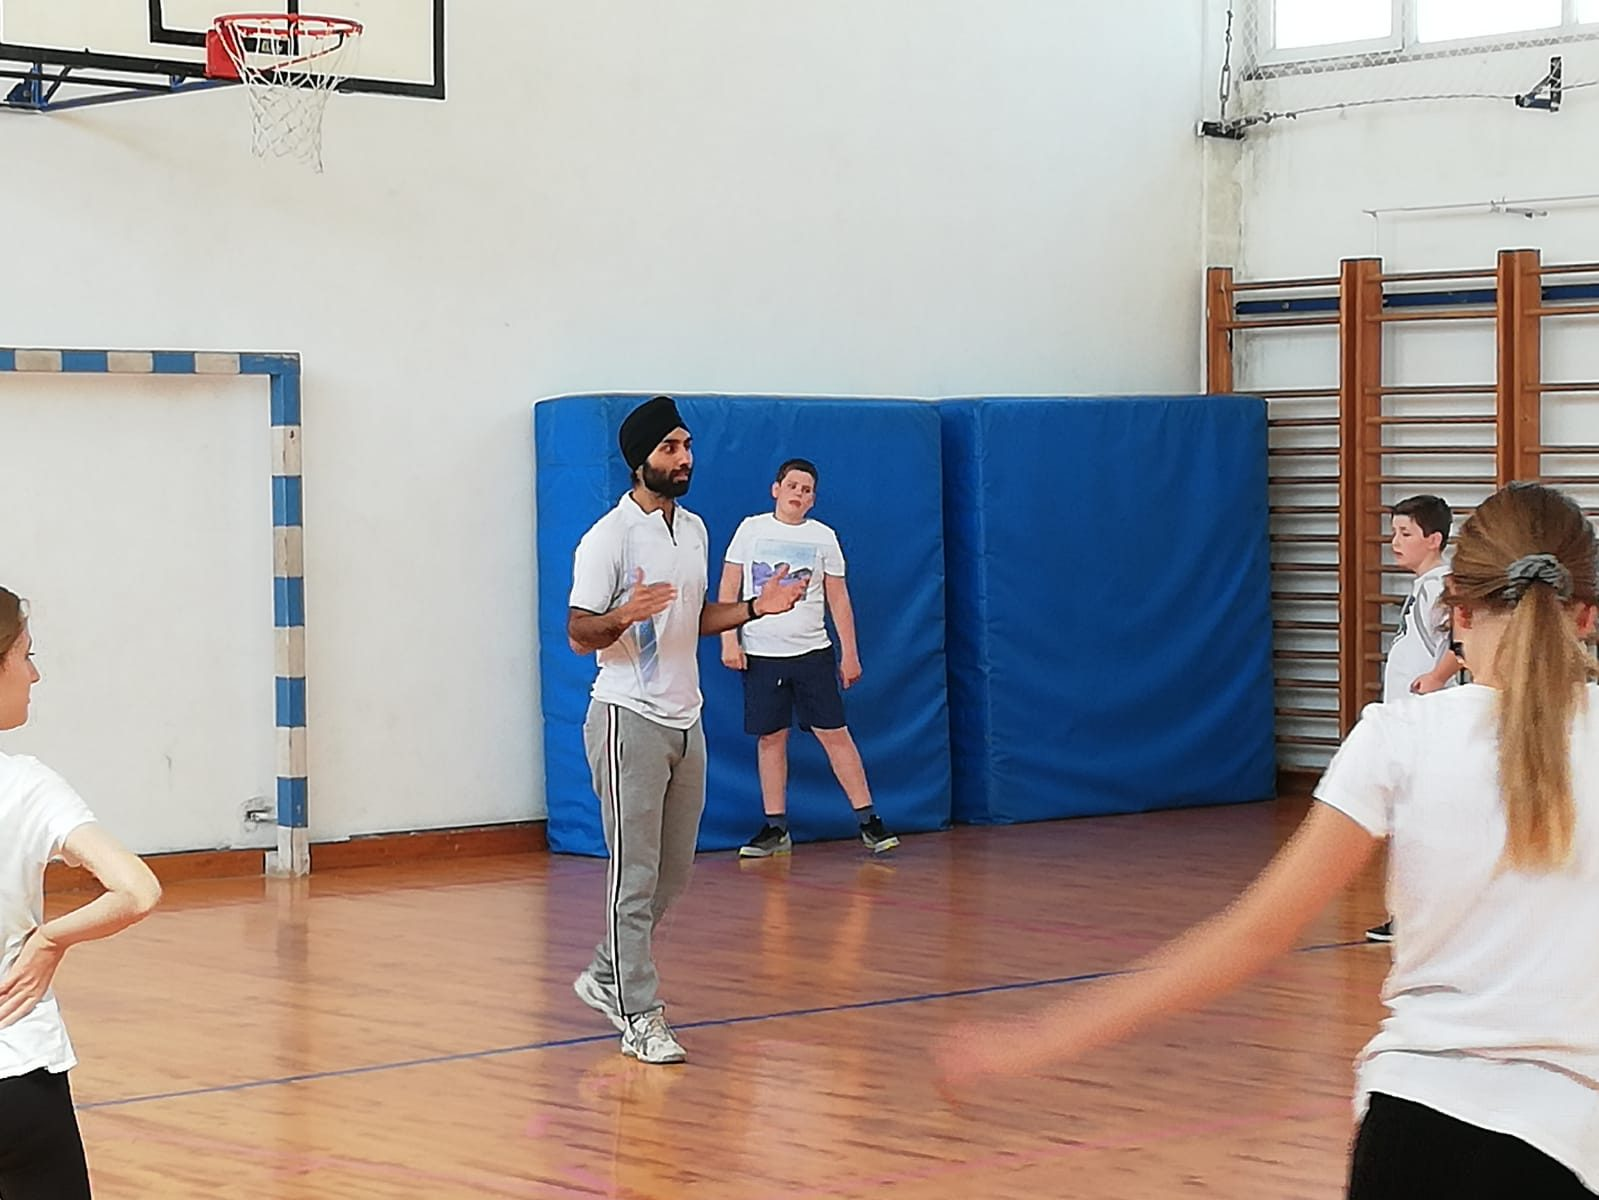 Introductory Training Os Bartula Kasica Badminton Club Zadar